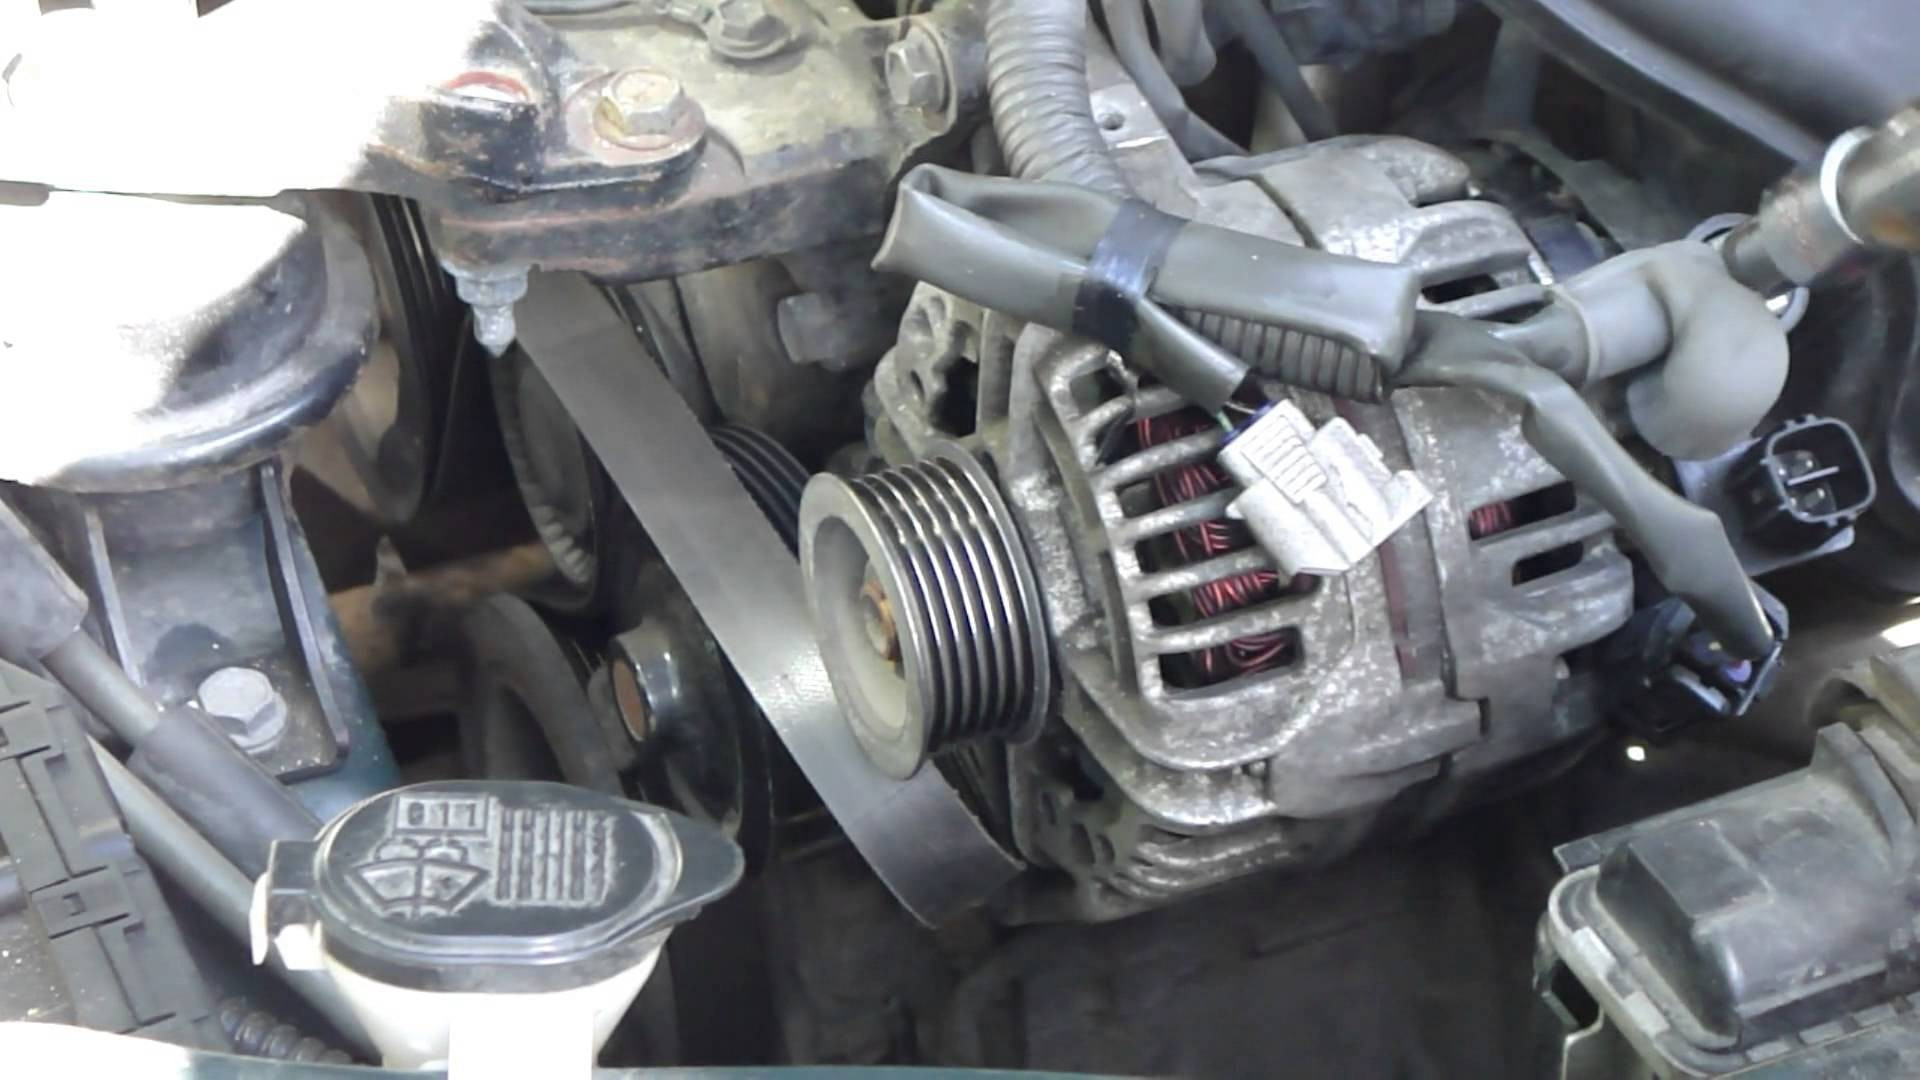 Toyota Camry 2007 Engine Diagram How To Change Alternator Corolla Vvt I Years 2000